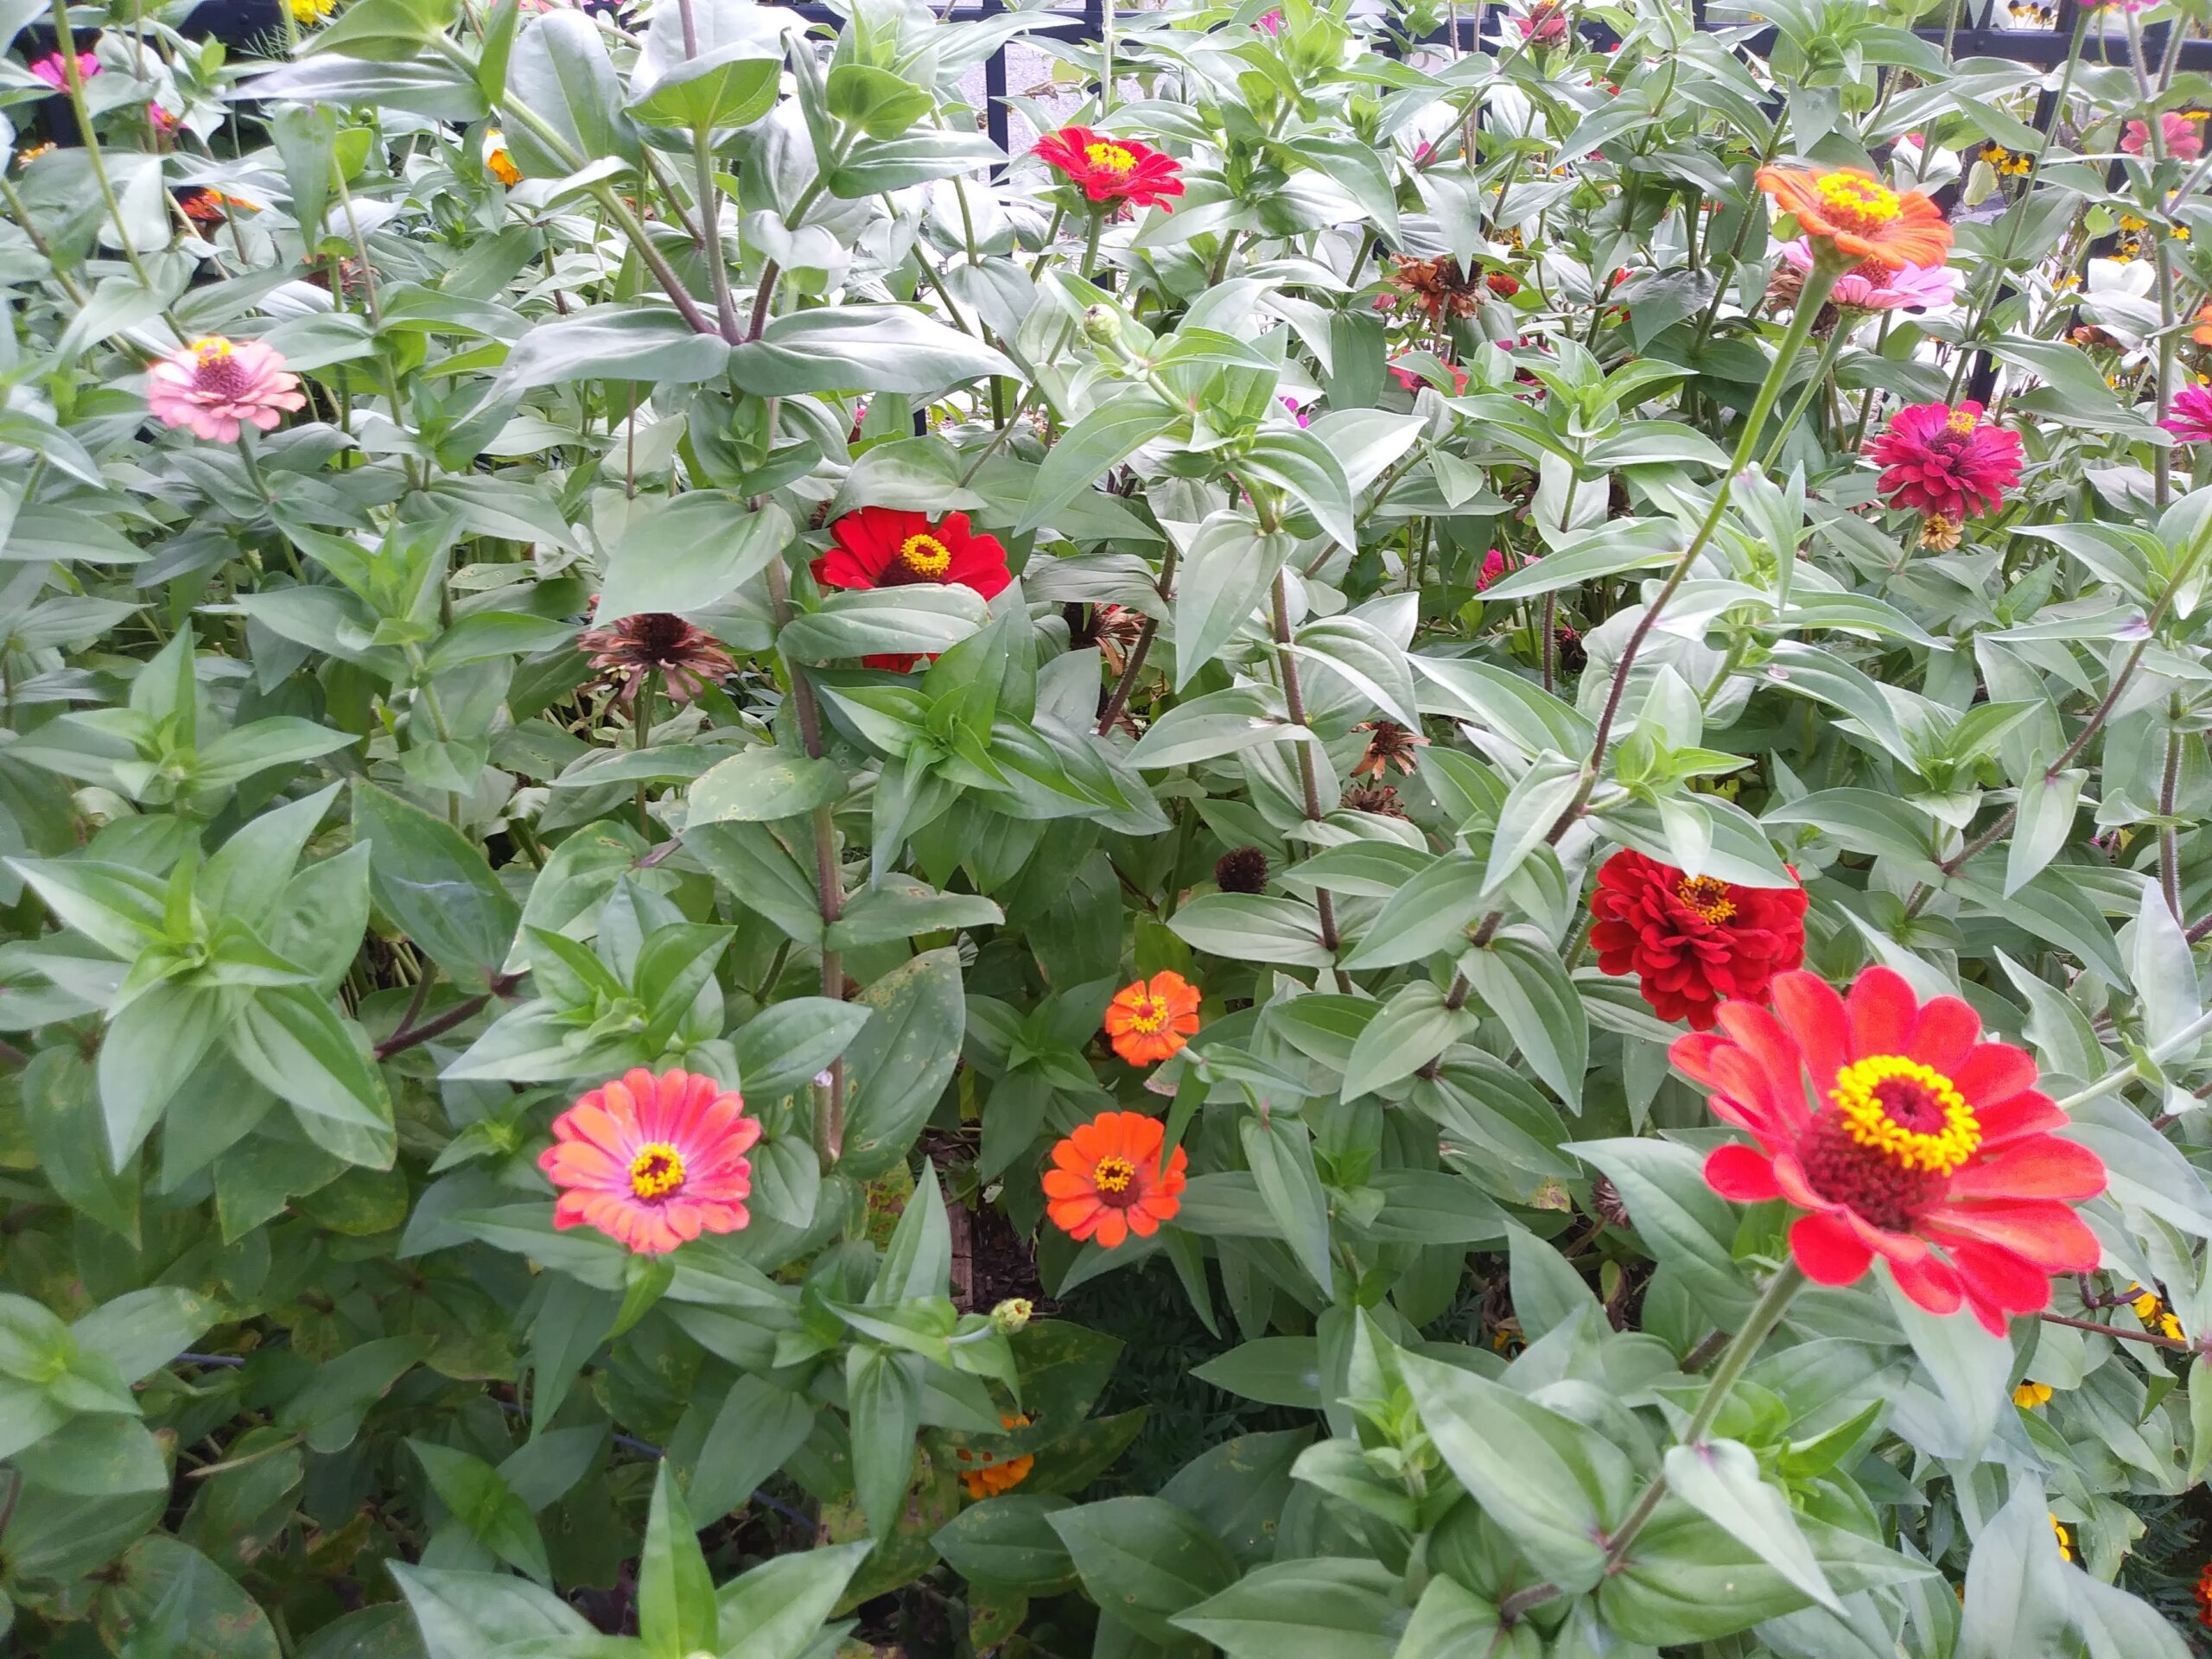 Red, pink, and orange zinnias bloom